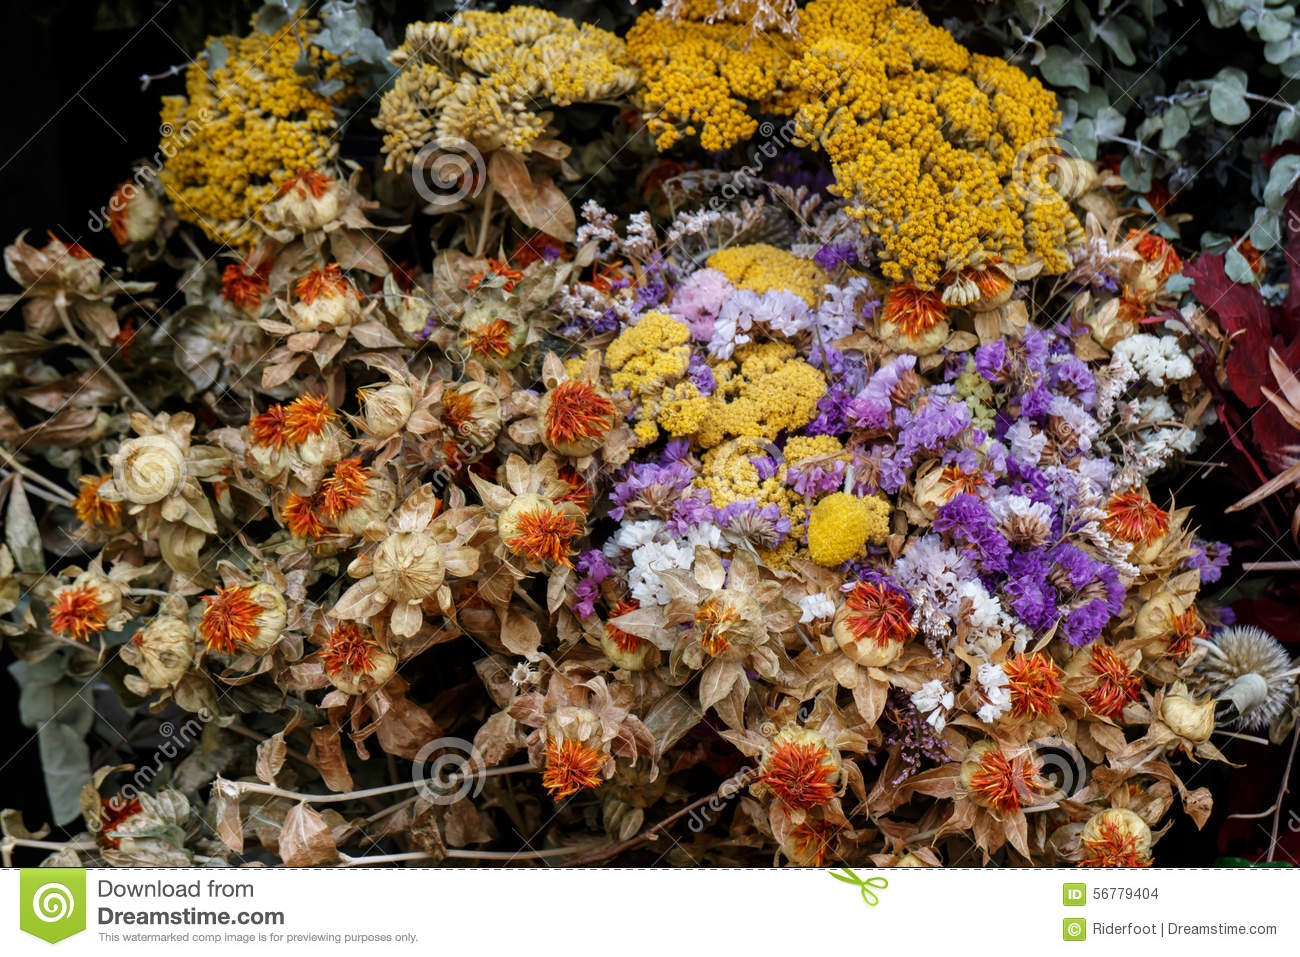 Dried Flowers Bouquet From A Shop Stock Photo Image Of Business Flowers 56779404